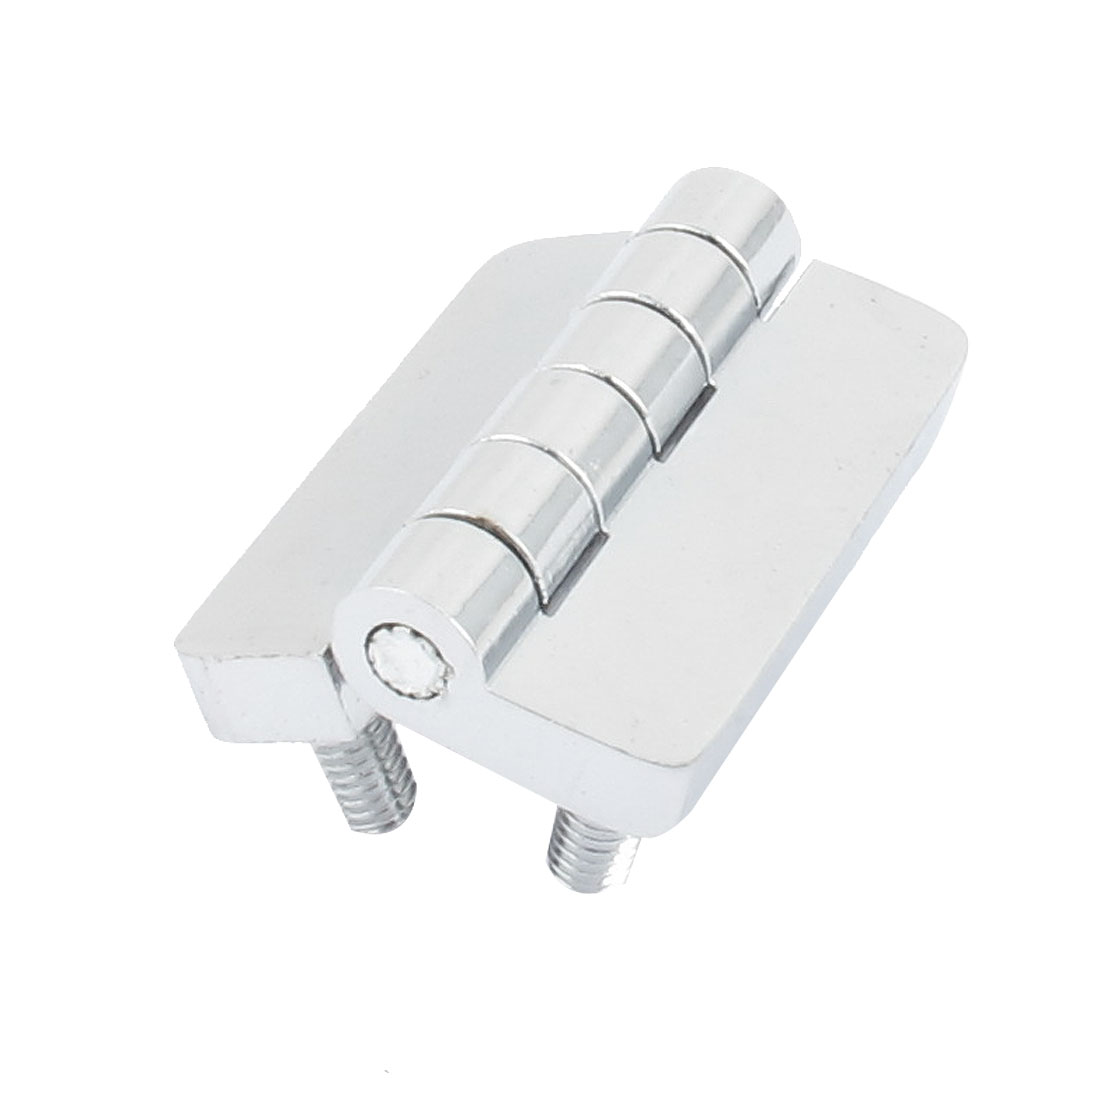 Screw On Type Metal Cabinet Closet Door Butt Hinge Silver Tone